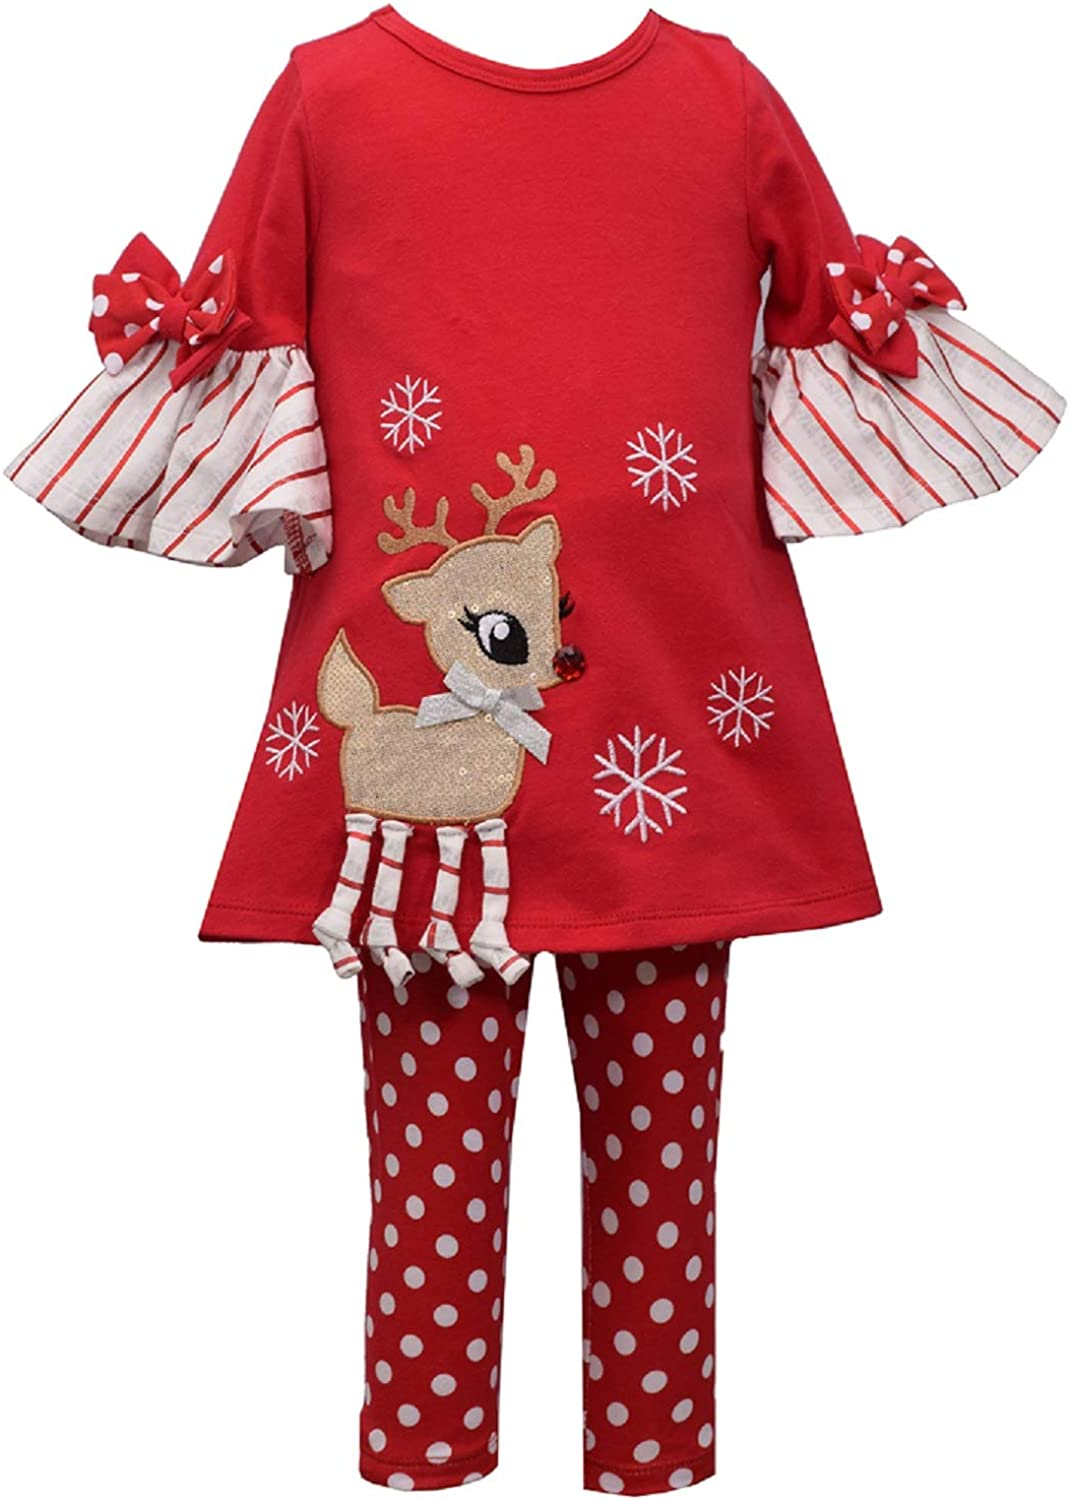 Bonnie Jean Holiday Christmas Tunic with Reindeer Applique Outfit Set